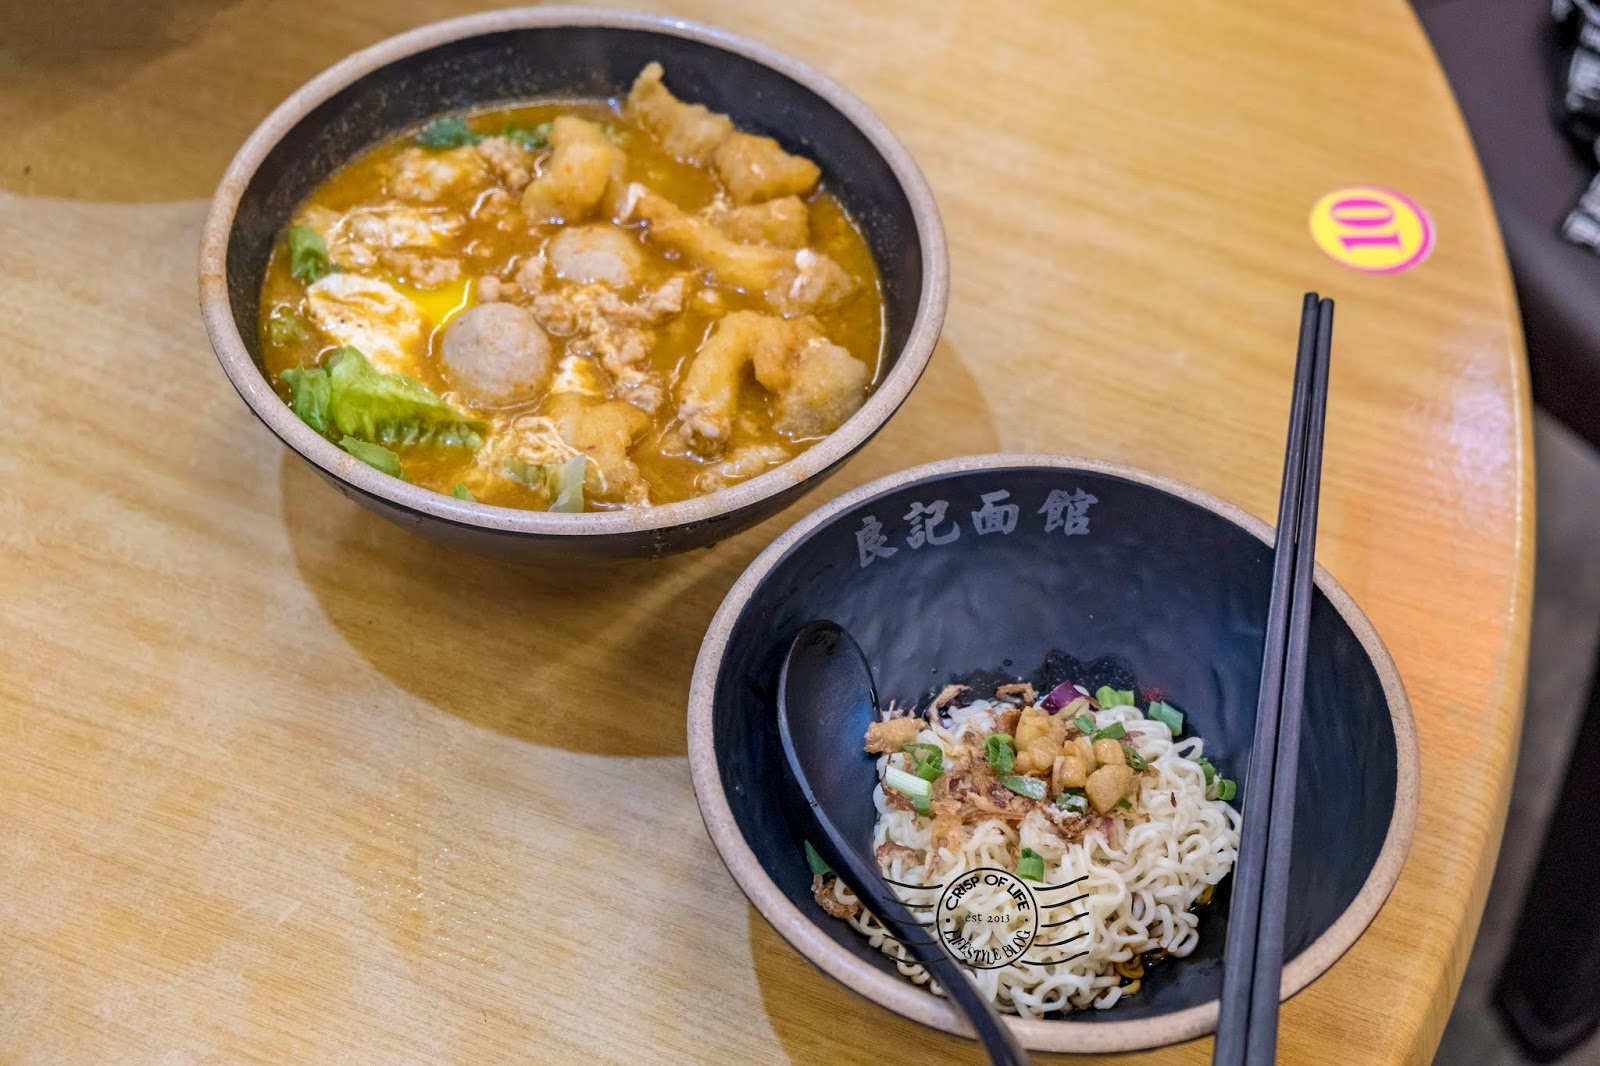 Restaurant Liang Khee Noodle House Raja Uda Outlet 良记东炎面北海分行